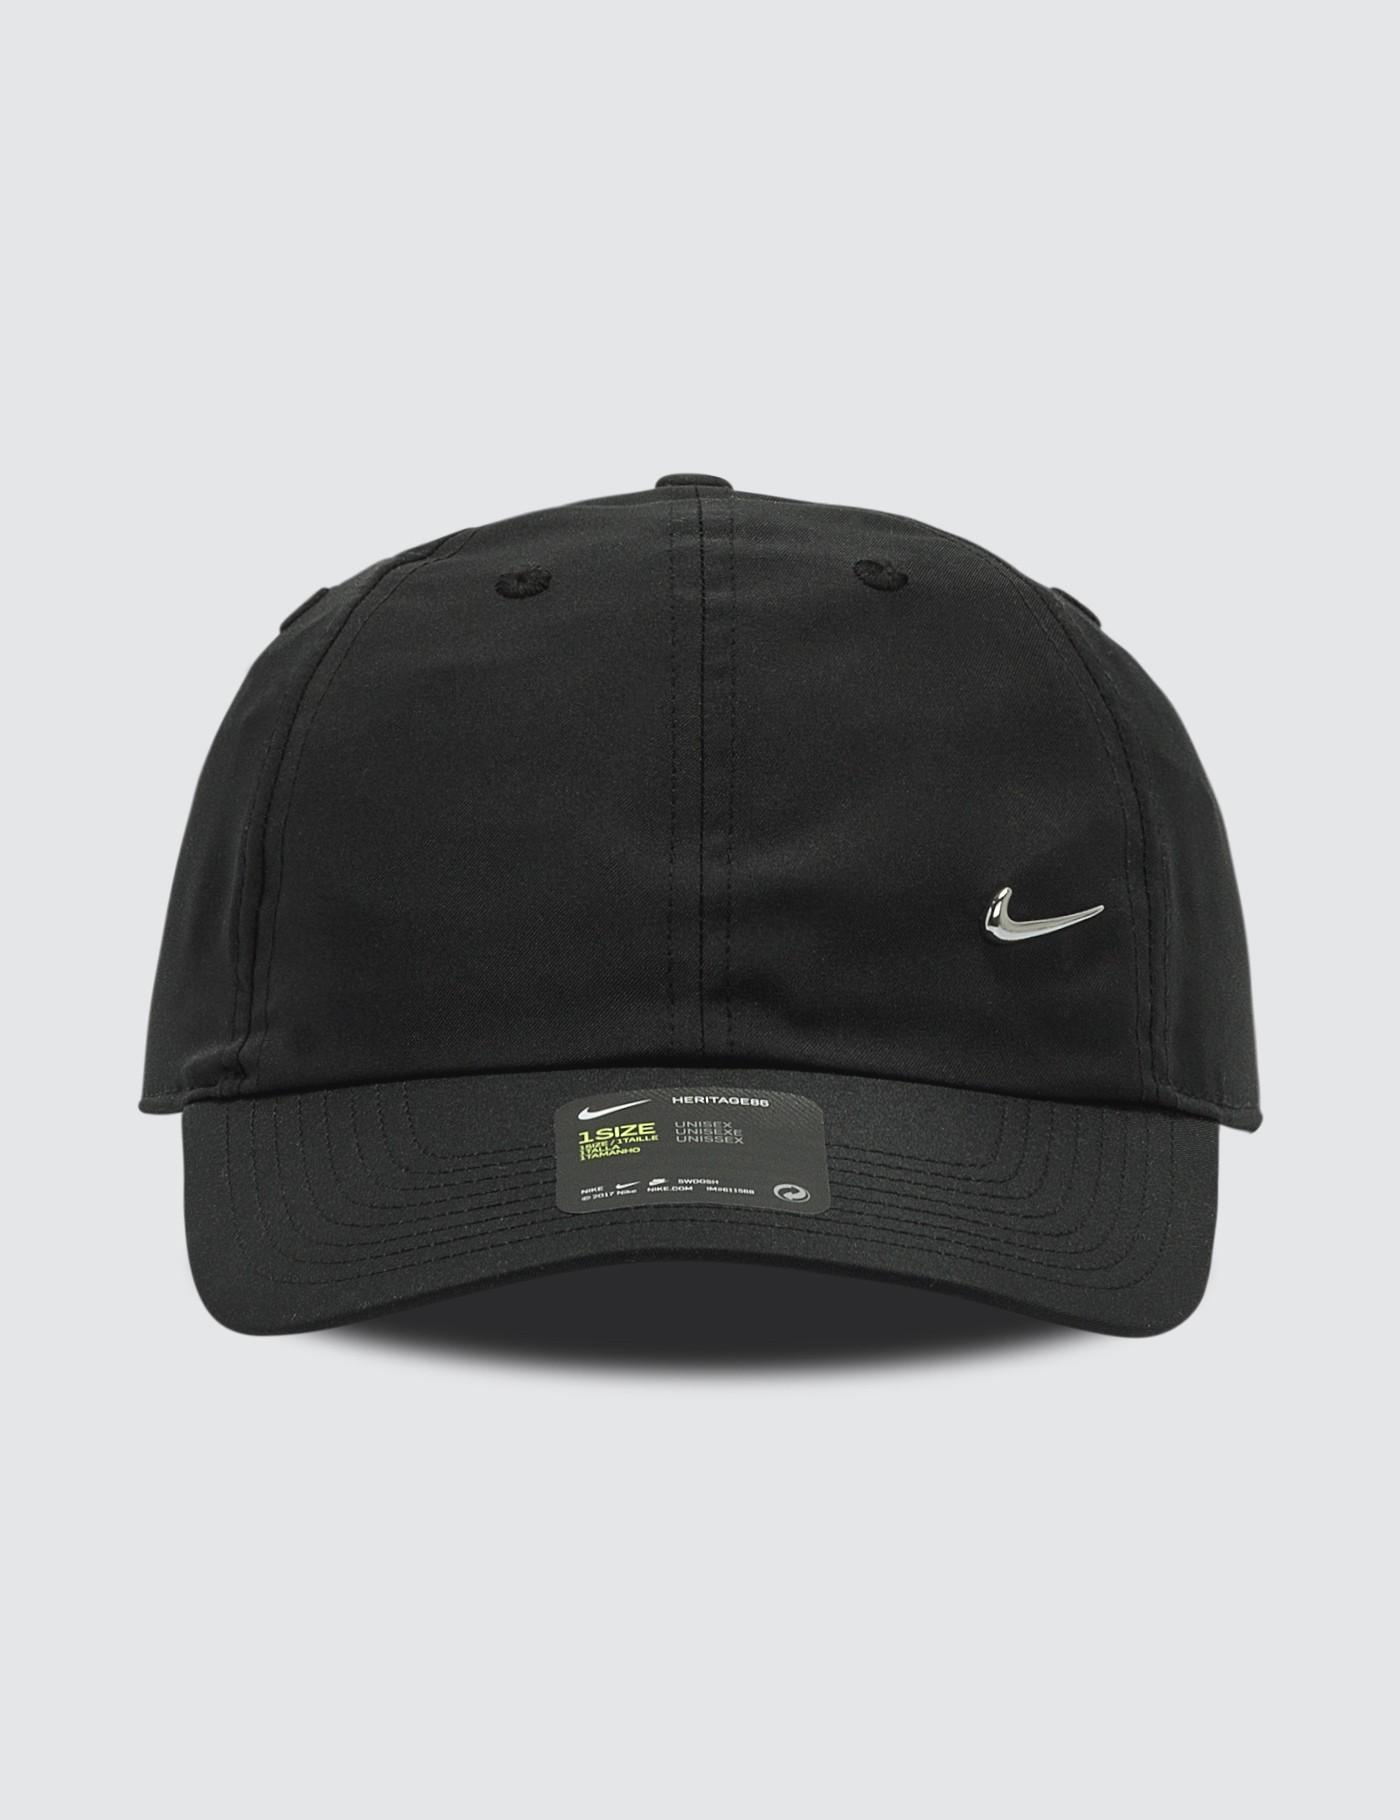 95d302c09f1 Lyst - Nike Metal Swoosh H86 Cap in Black for Men